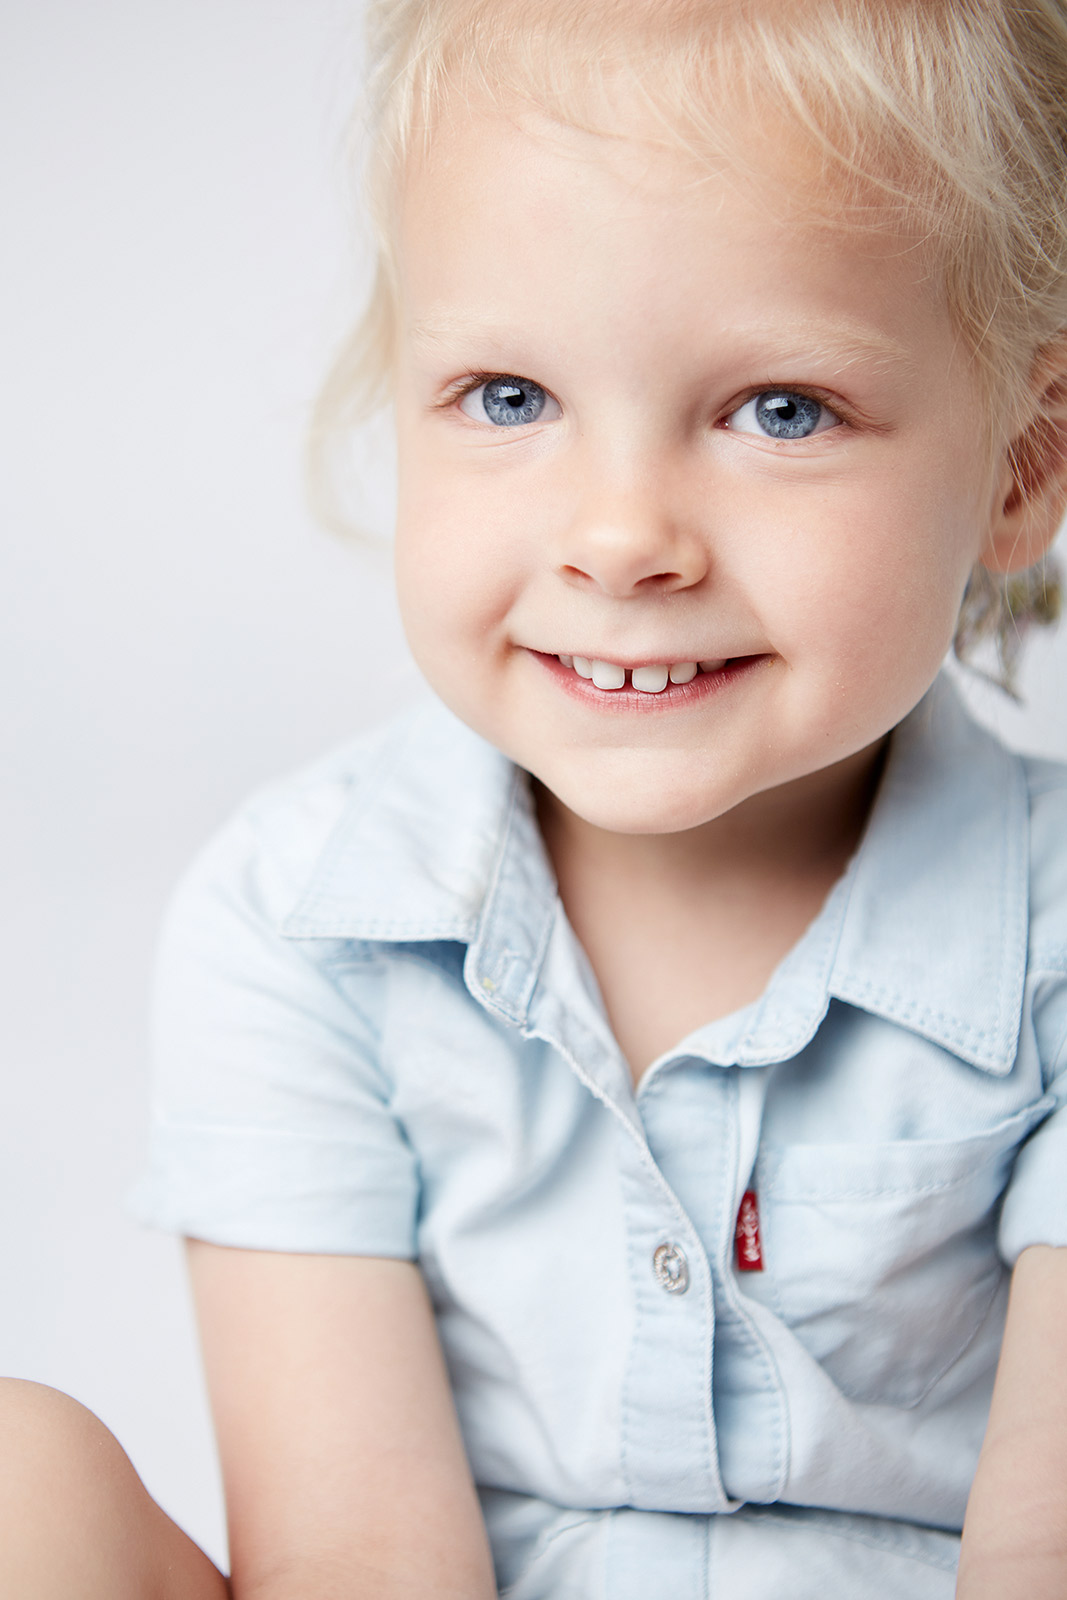 Kids_Studio_Photograher_Chicago_Girl_White_Squint_Portrait_Smile_Tiny_Space_Studio